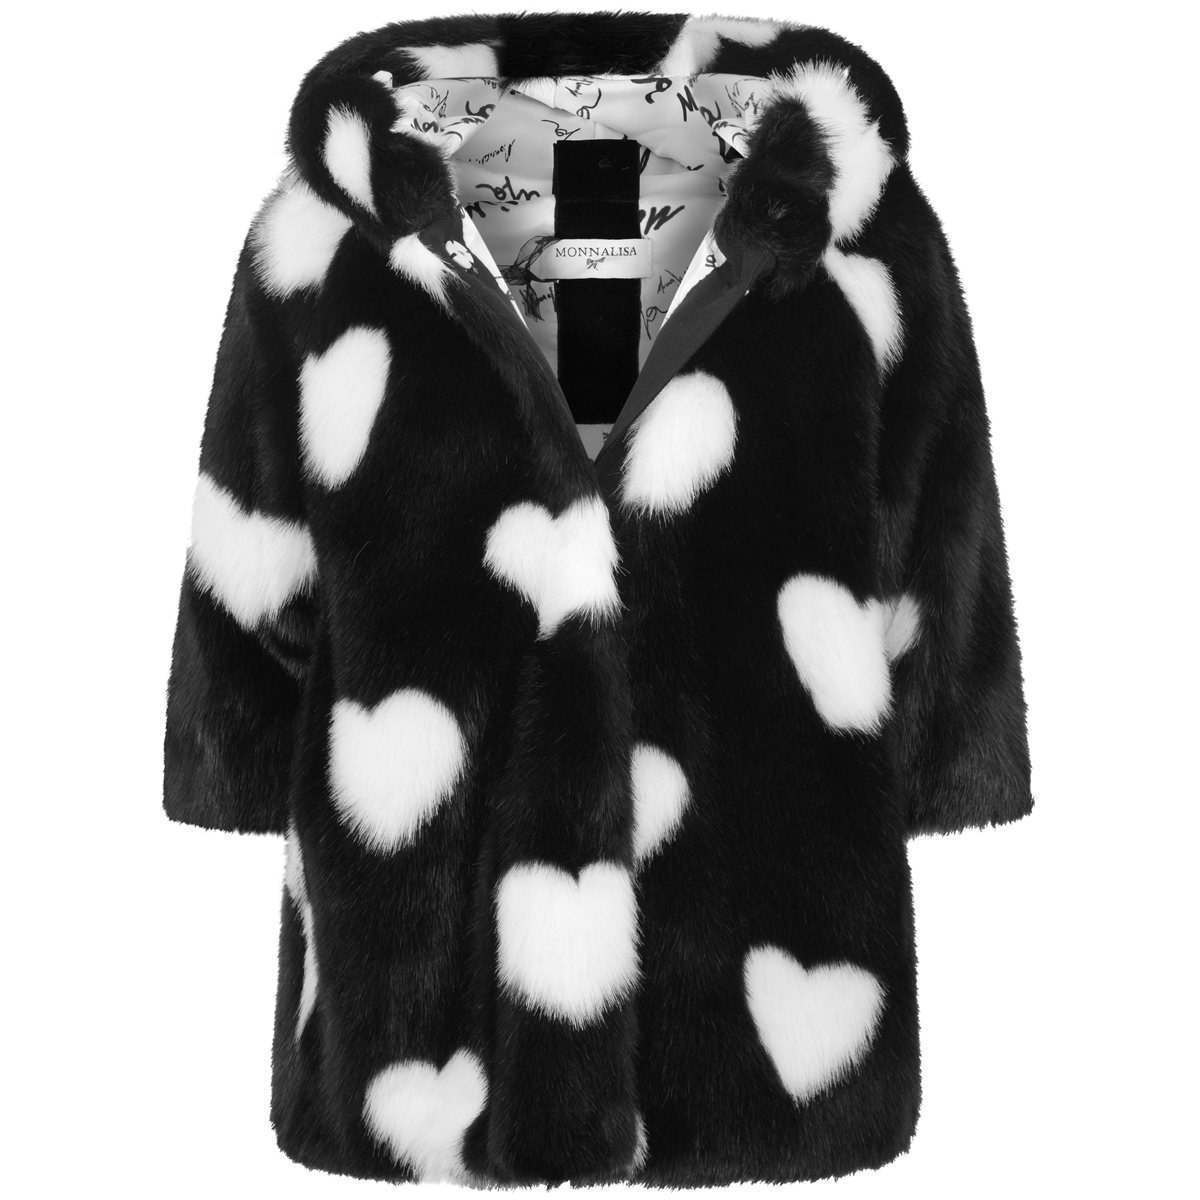 Monnalisa Black Heart Faux Fur Coat